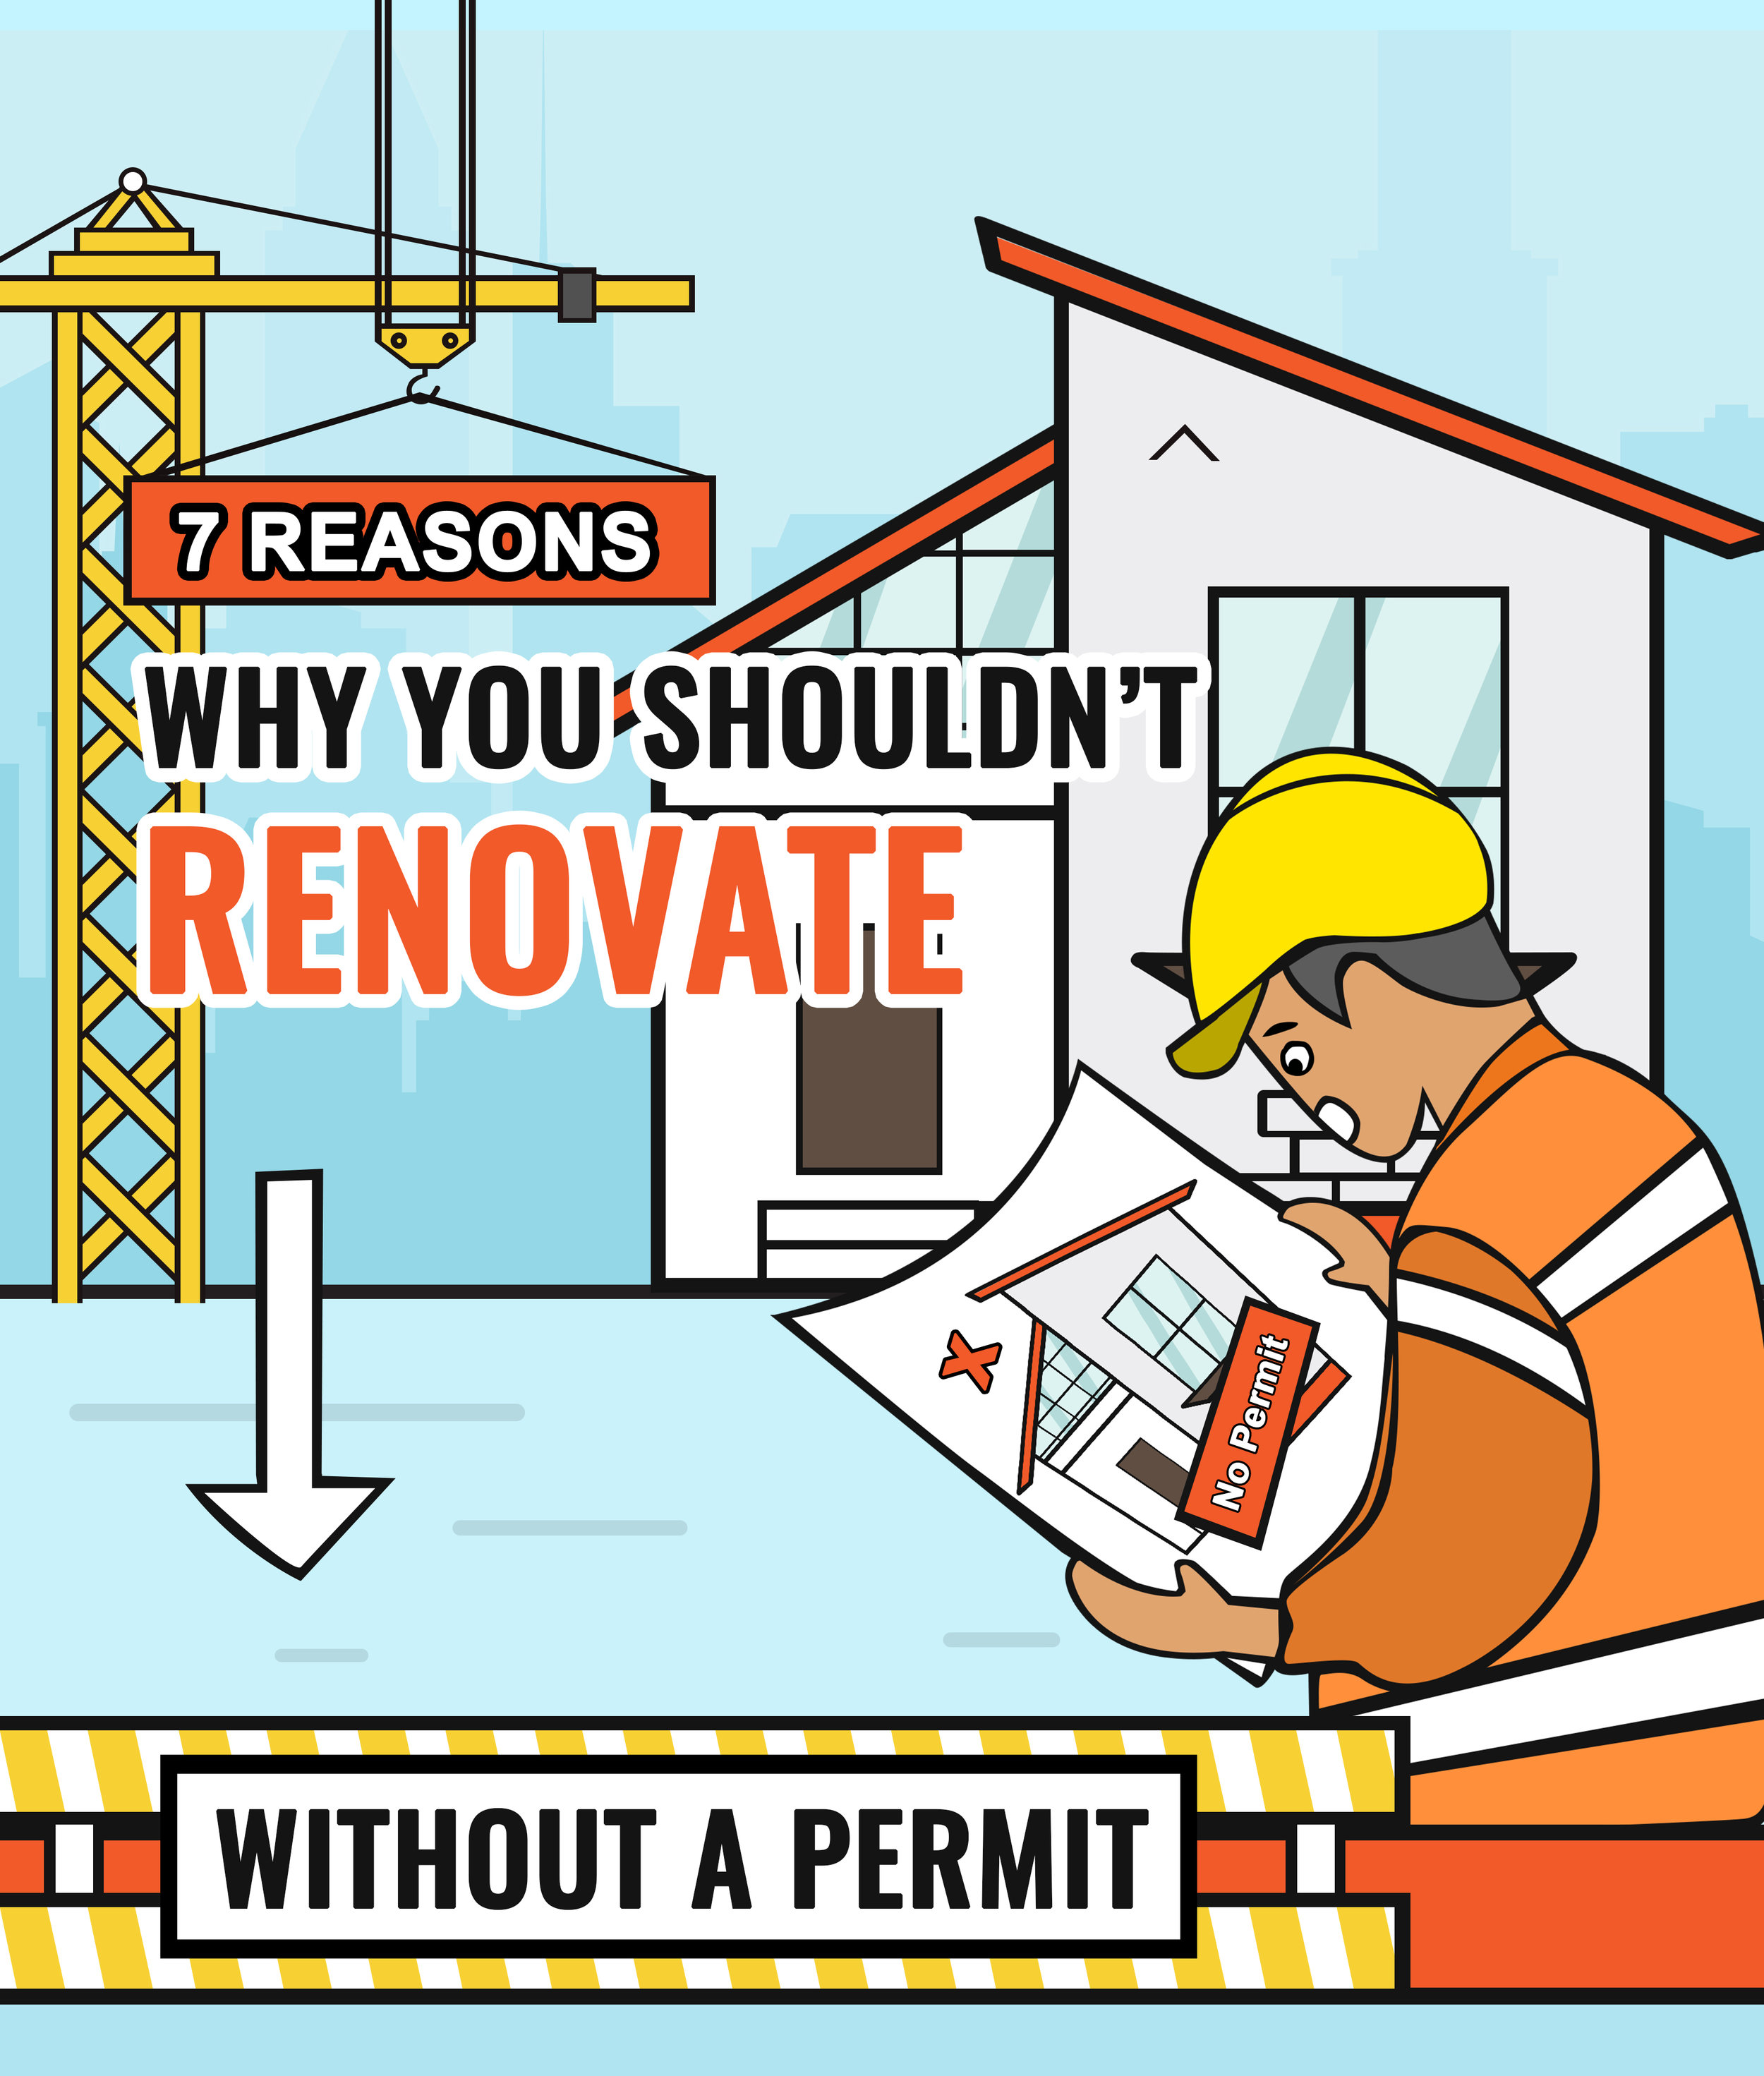 7 Reasons Why You Shouldn't Renovate Without A Permit.jpg